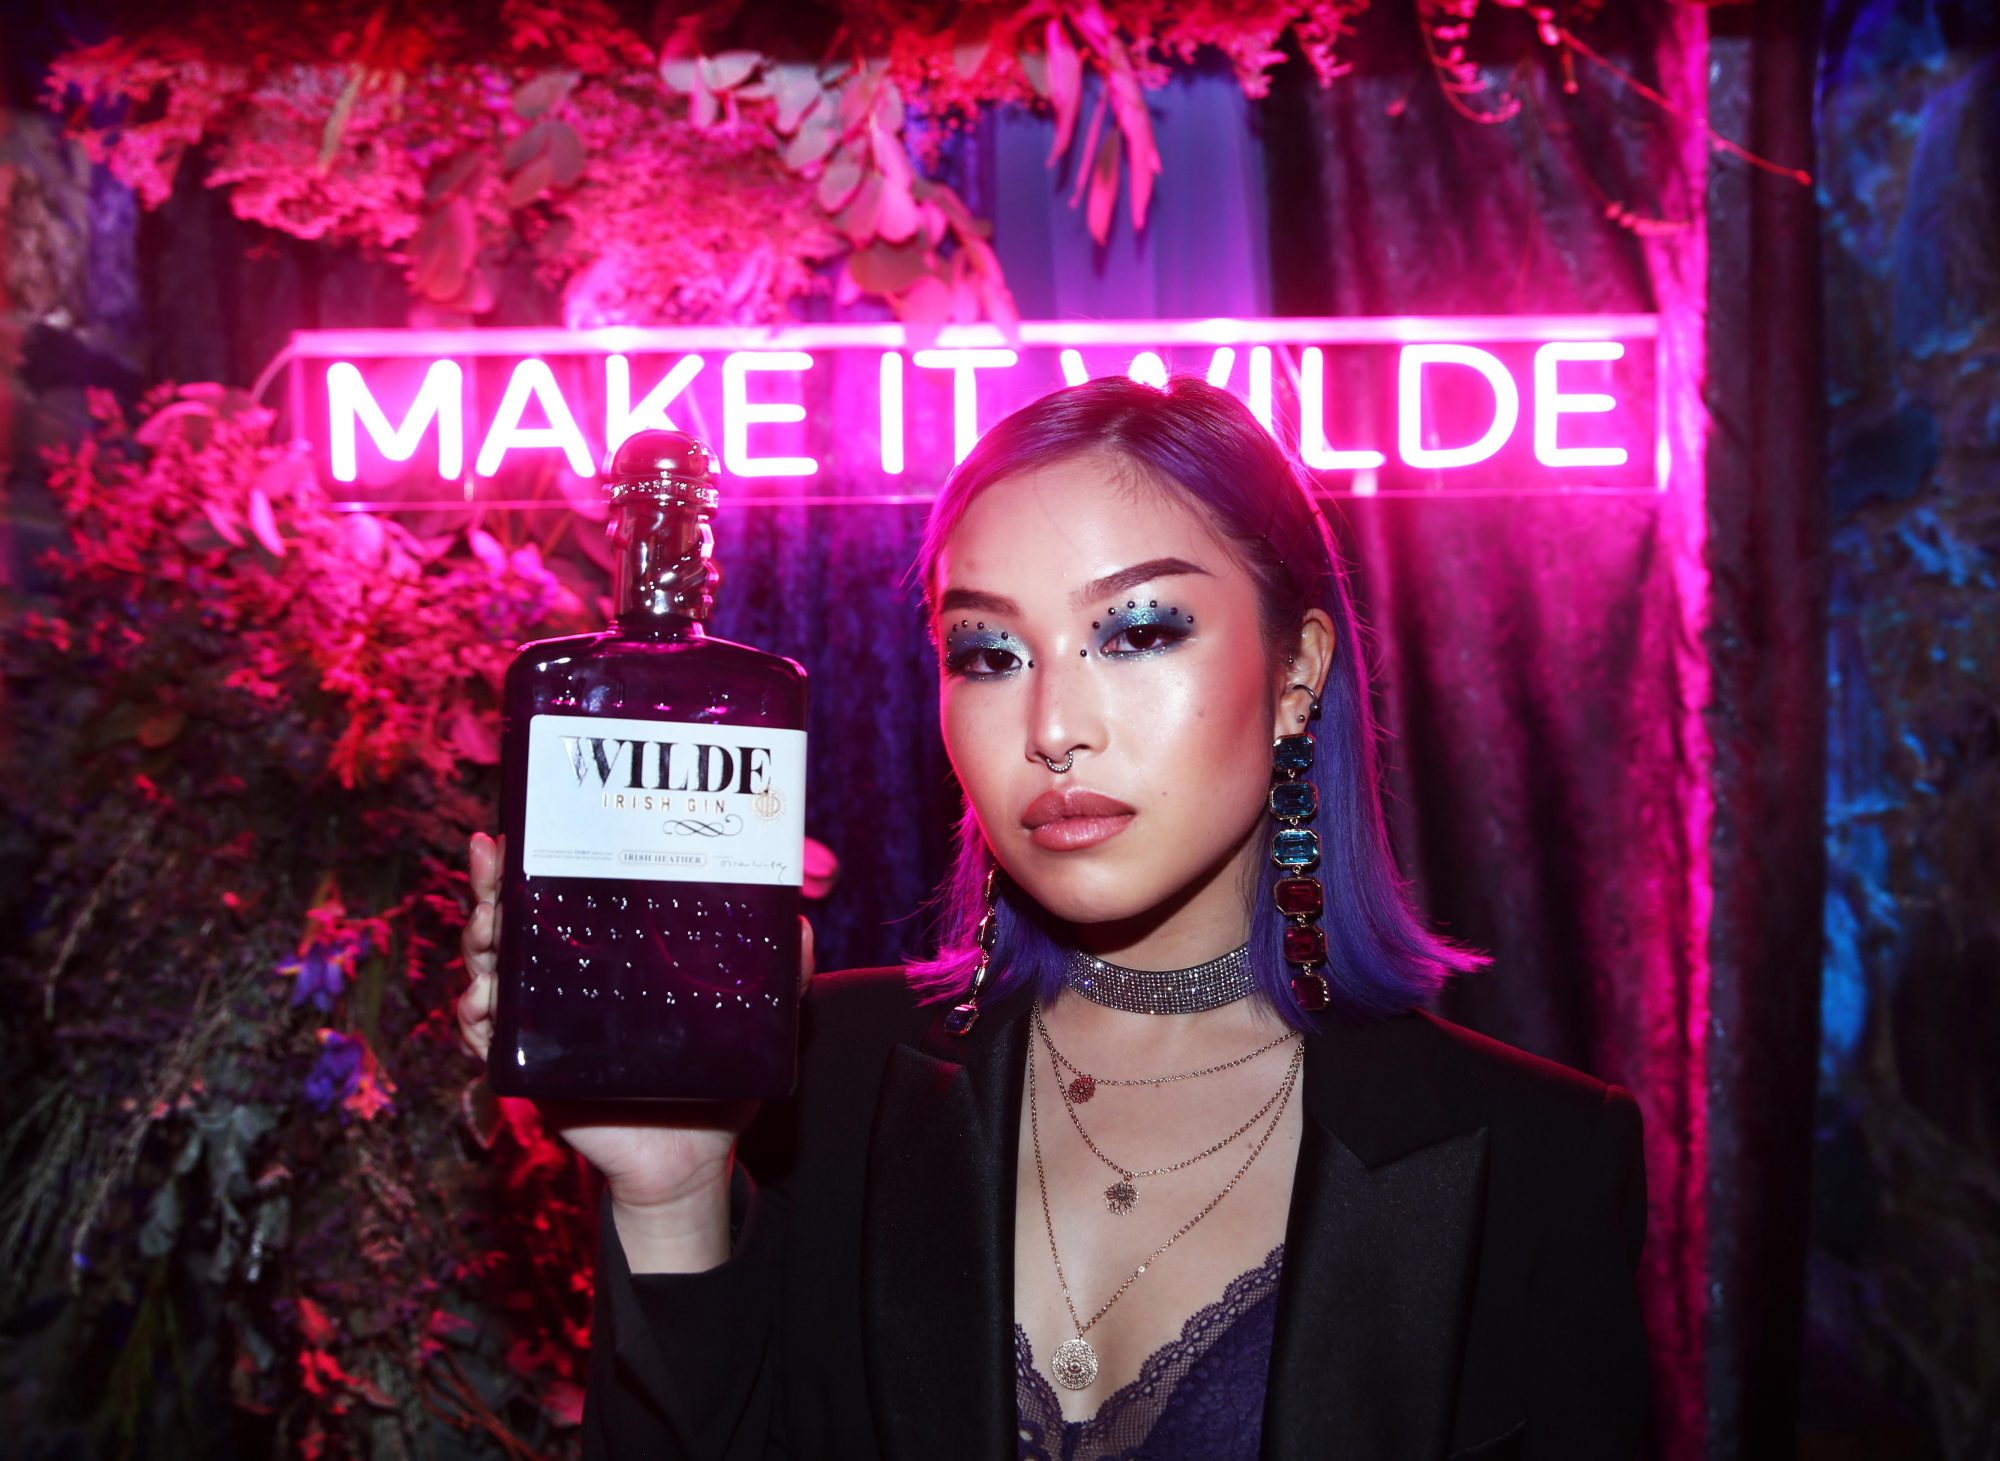 Wei Ying Chang pictured at the exclusive global launch of Wilde Irish Gin at The Cellar Bar last night. Photograph: Leon Farrell / Photocall Ireland